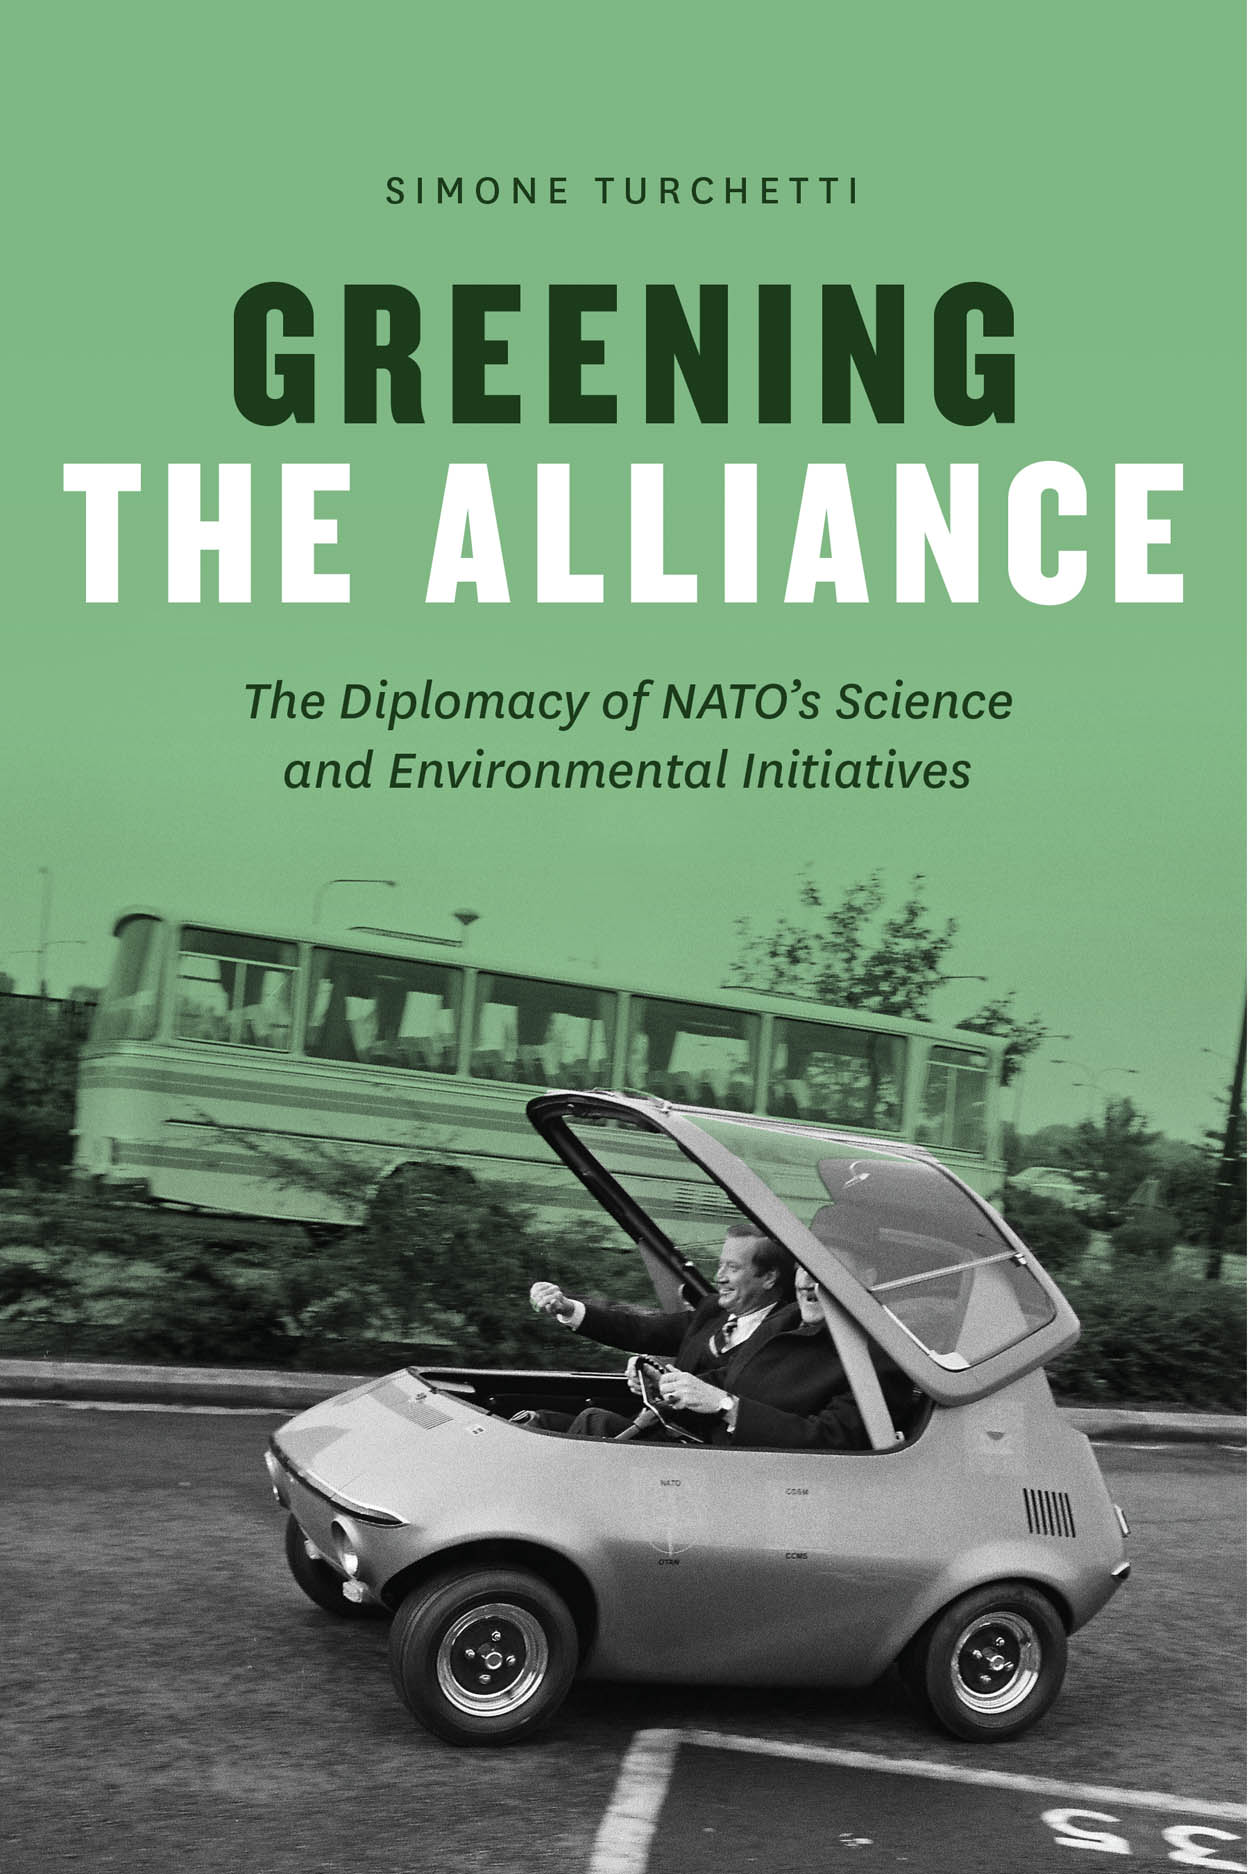 Greening the Alliance: The Diplomacy of NATO's Science and Environmental Initiatives